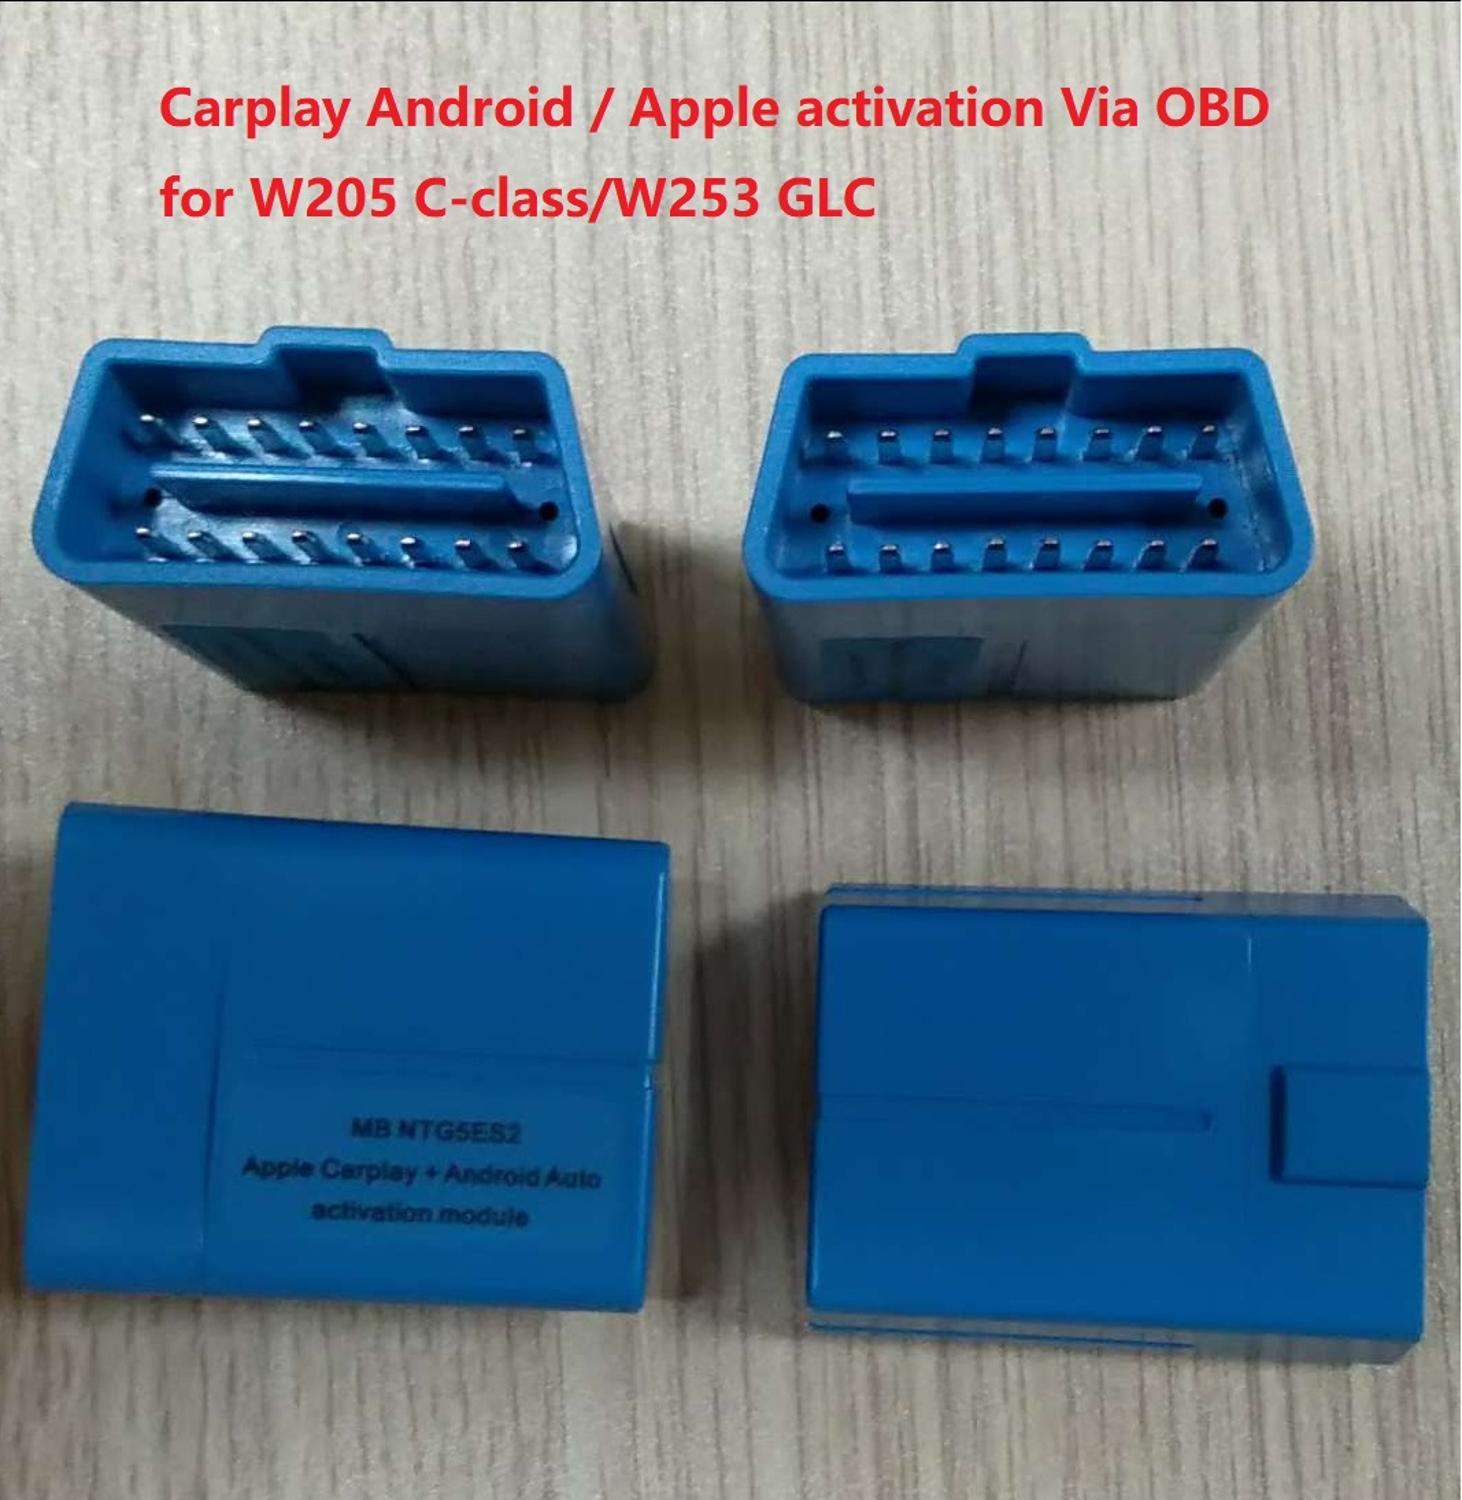 W253 Activation C-Class Carplay Android NTG5ES2 W205 Super-Mb Auto For Apple OBD In-Stock